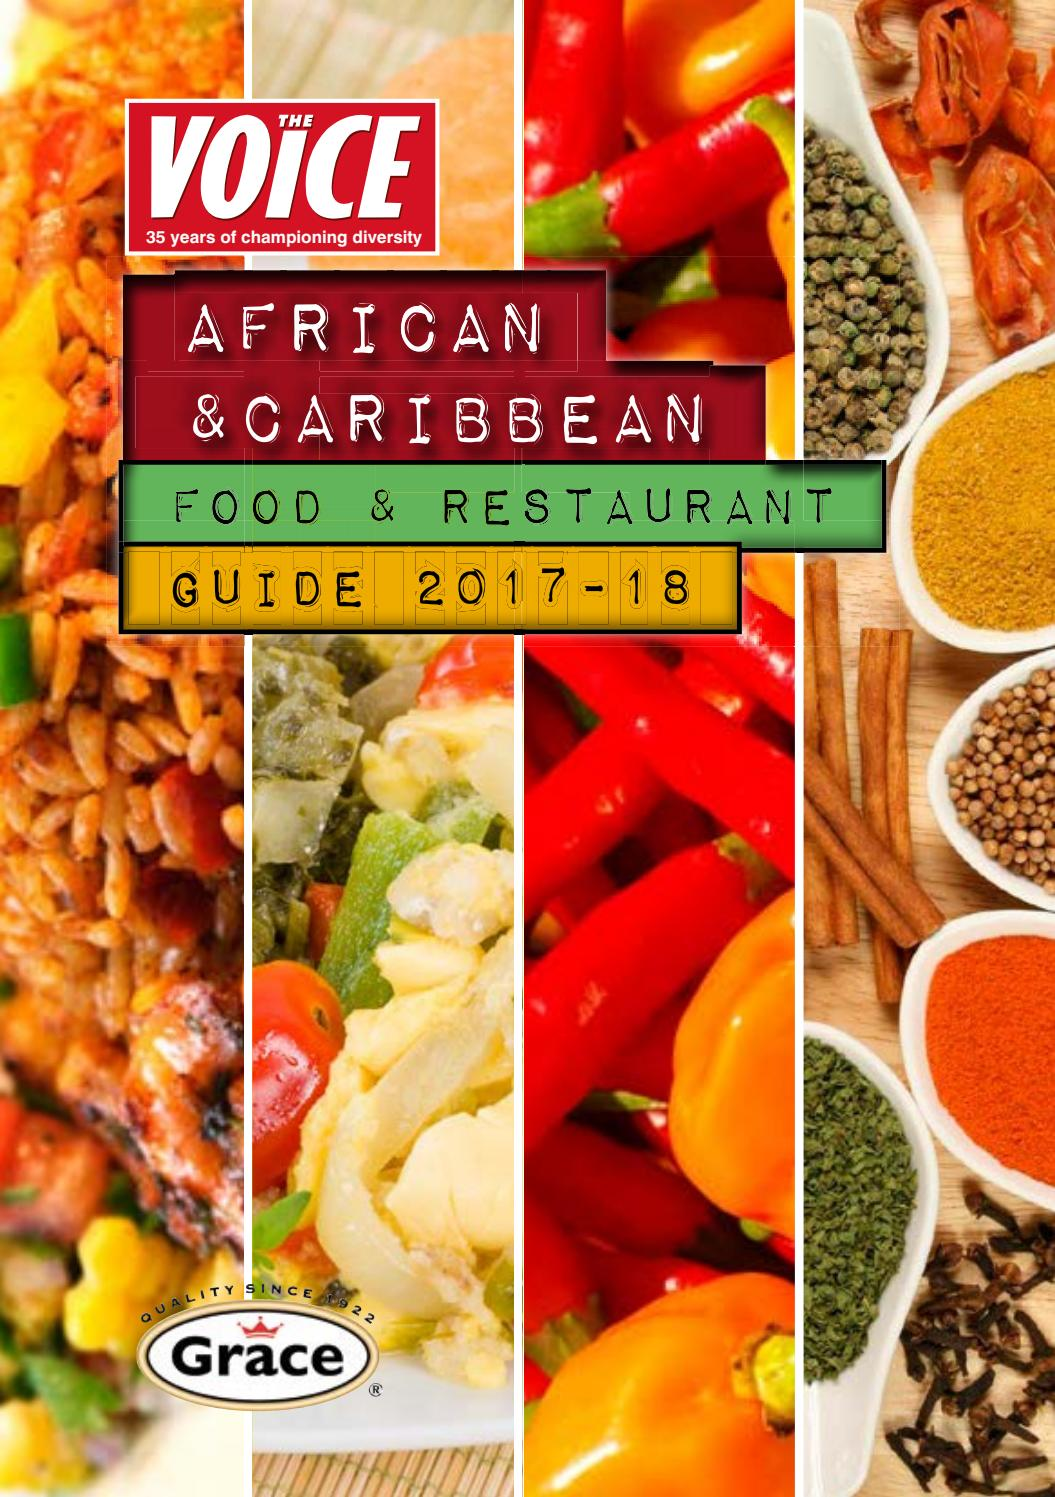 The voice african caribbean food and restaurant guide 2017 for Afro caribbean cuisine